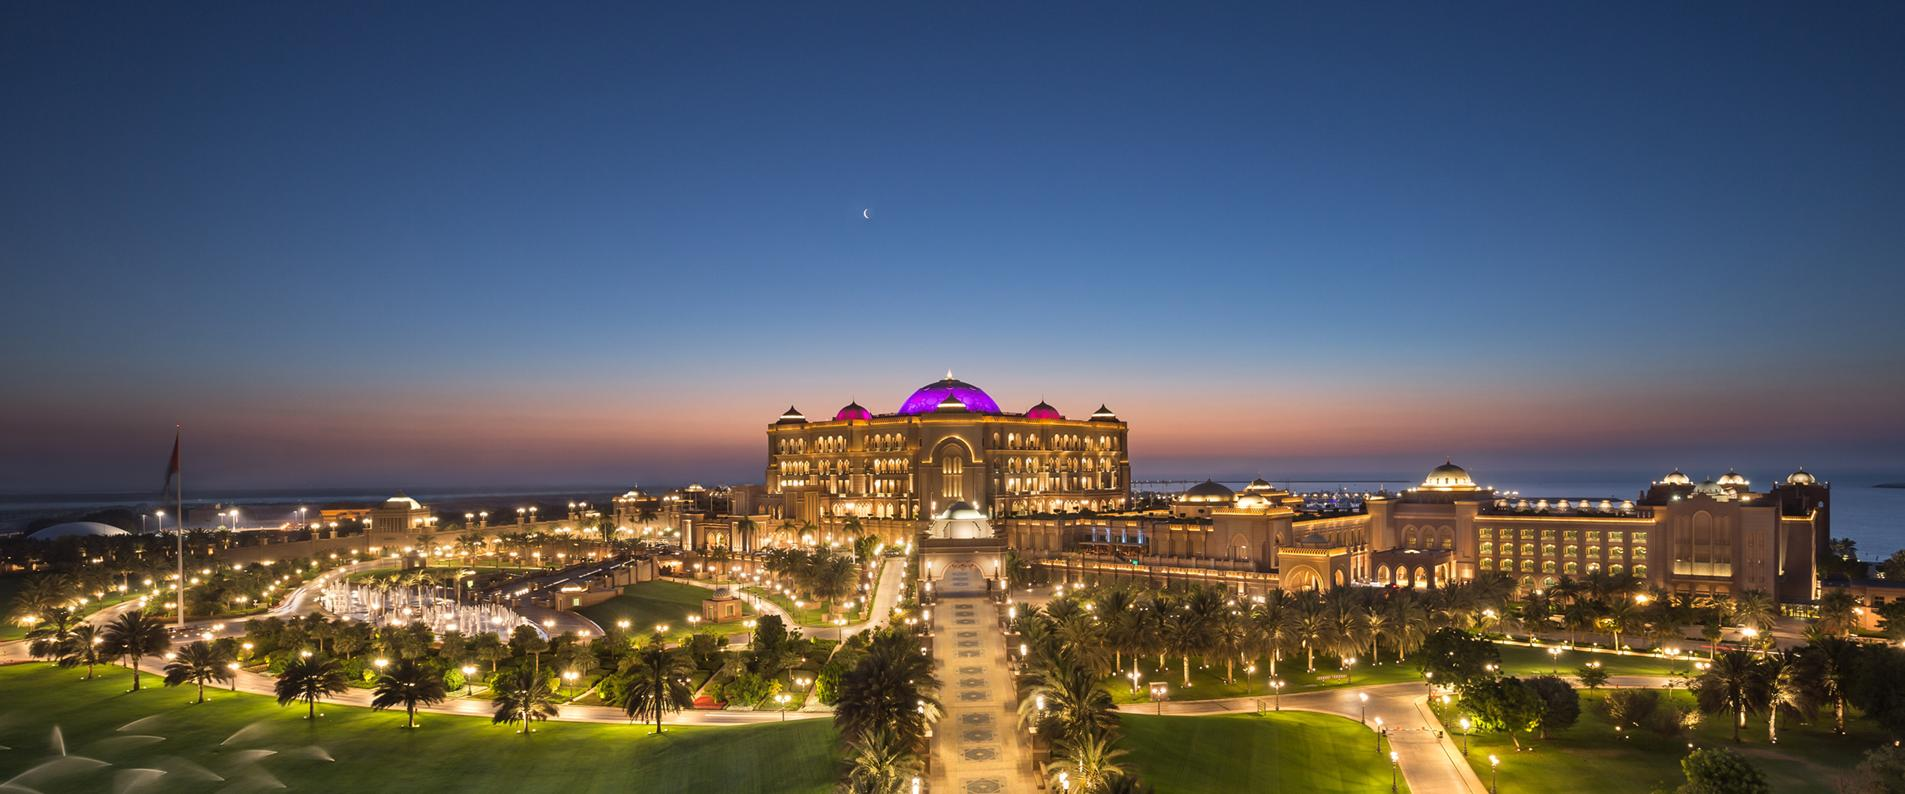 stackliving-luxurious-hotels-01-emirates-palace-abu-dhabi-02